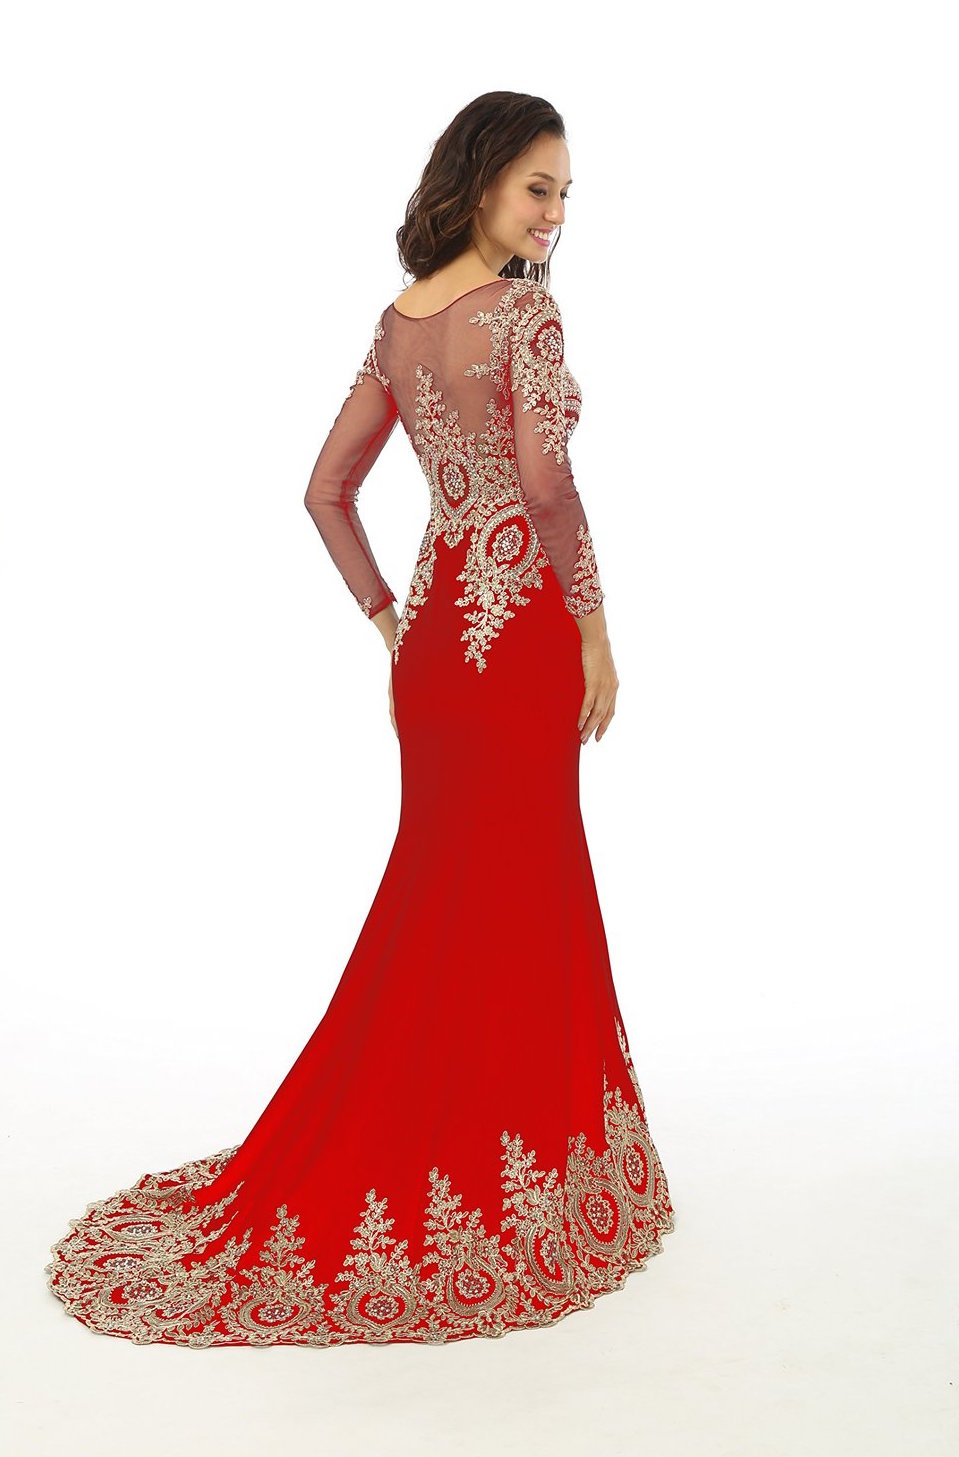 rhinestone red wedding dress